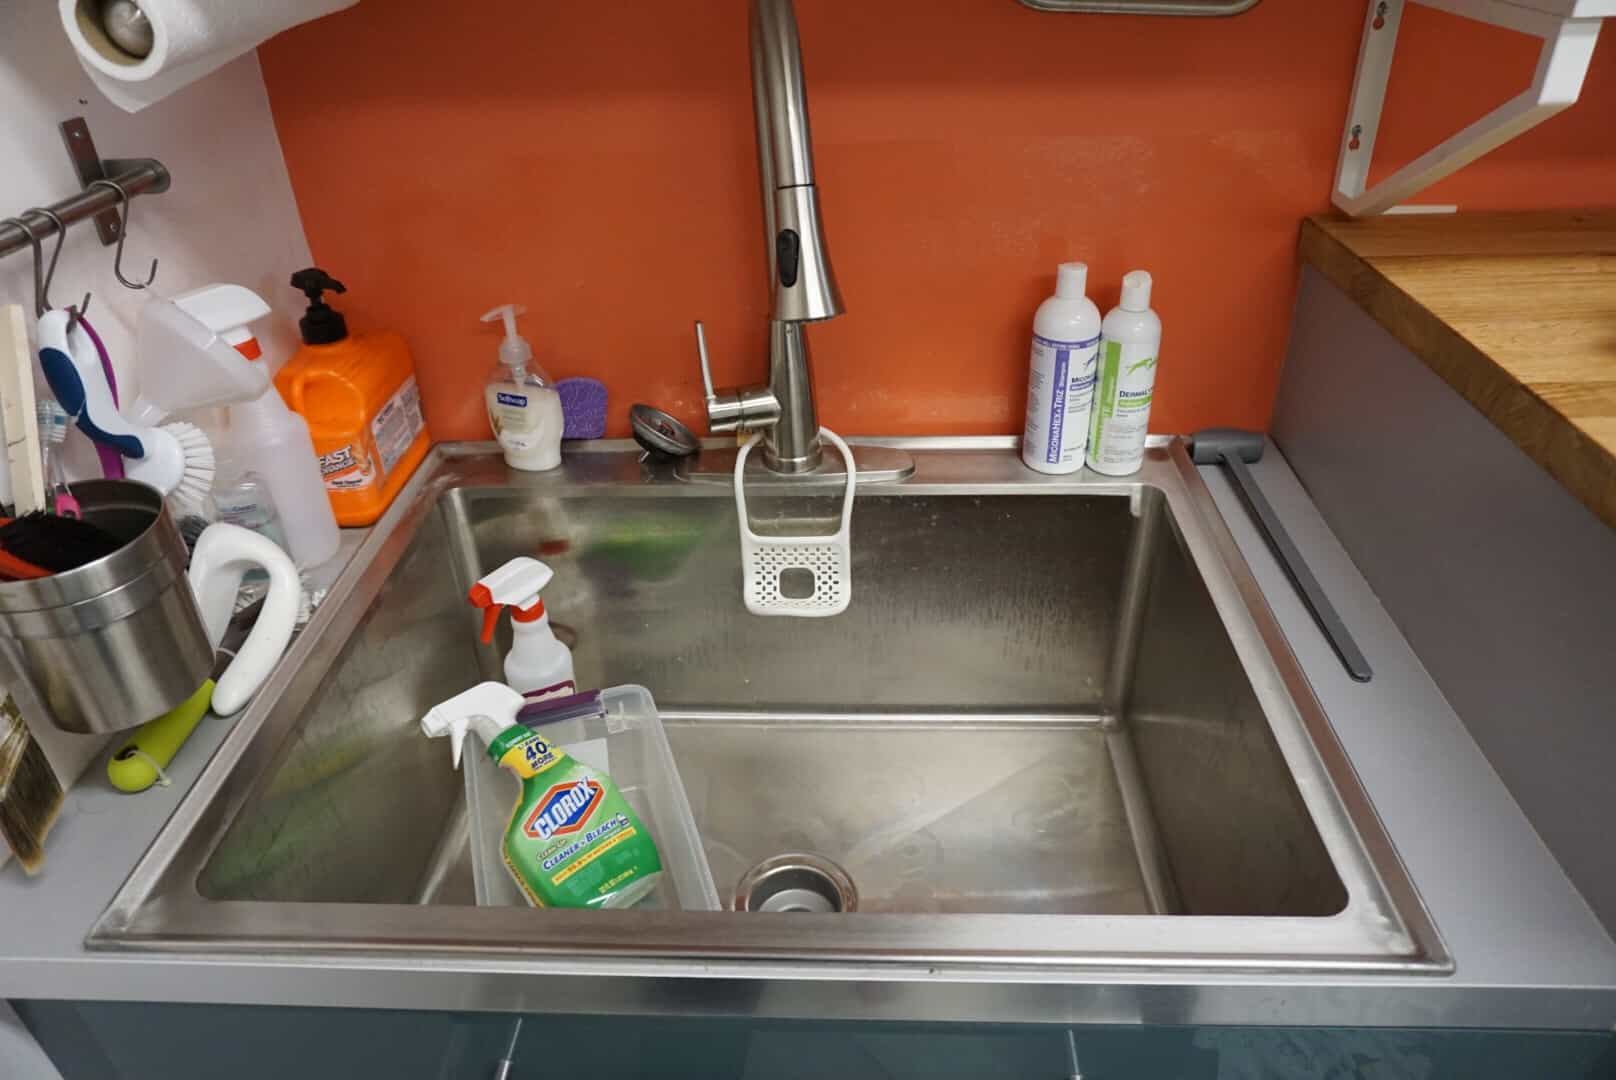 Giant laundry sink